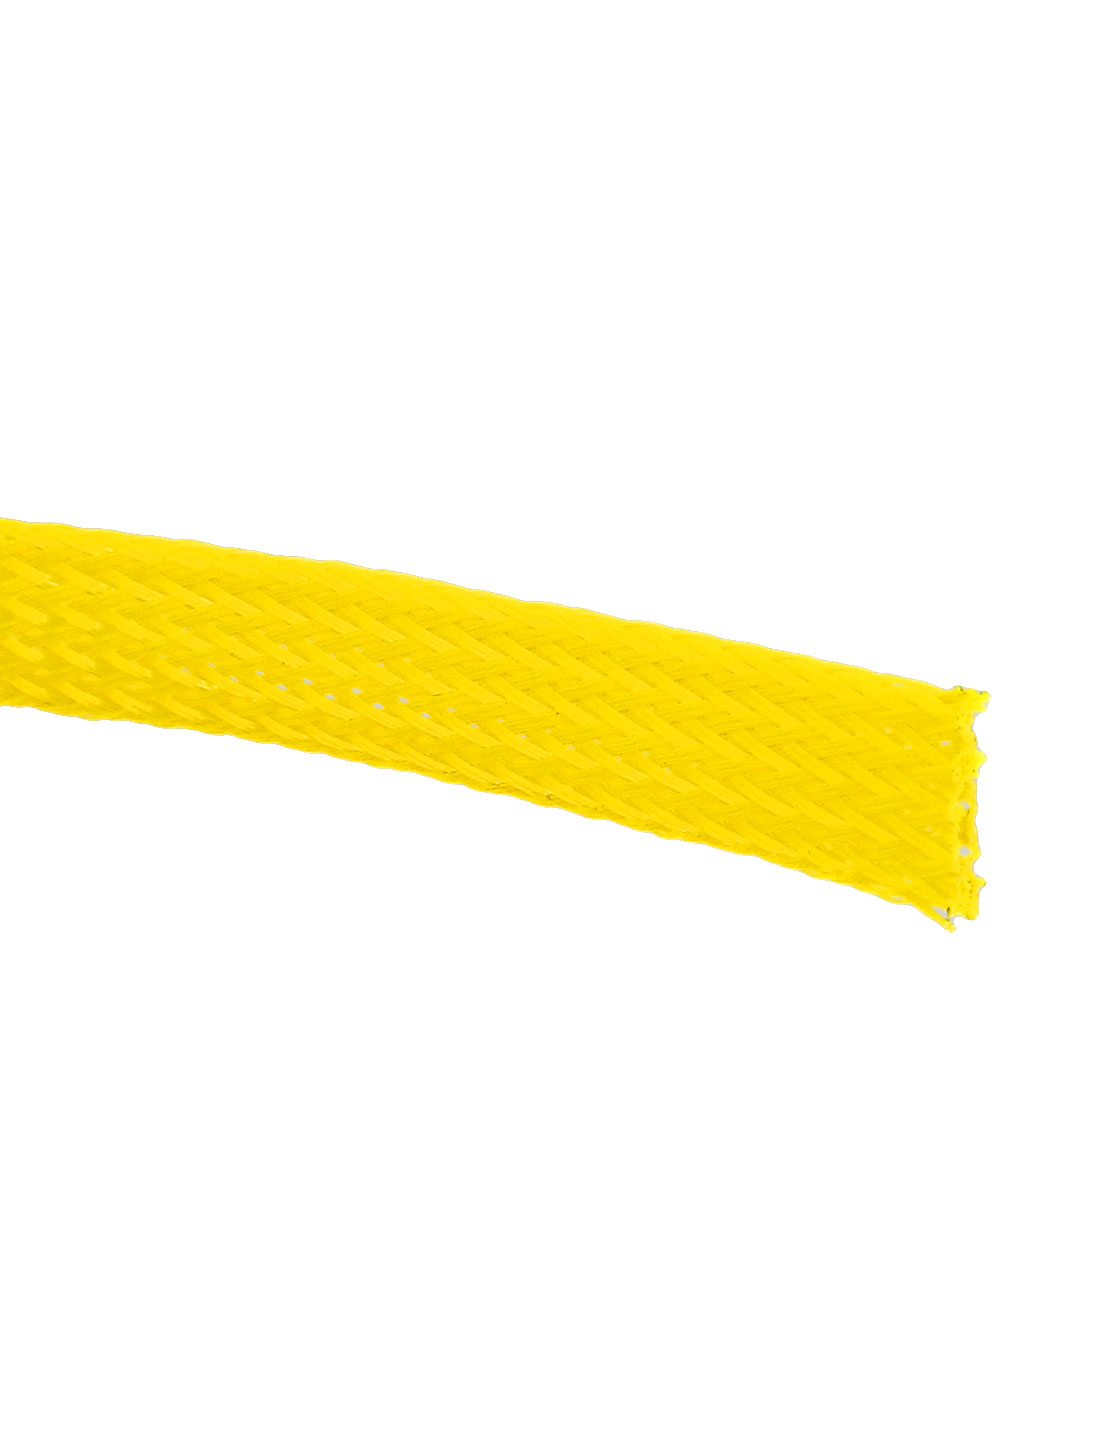 Unique Bargains 03 Width Auto Audio Braided Cable Wire Sheathing Harness Sleeve Yellow